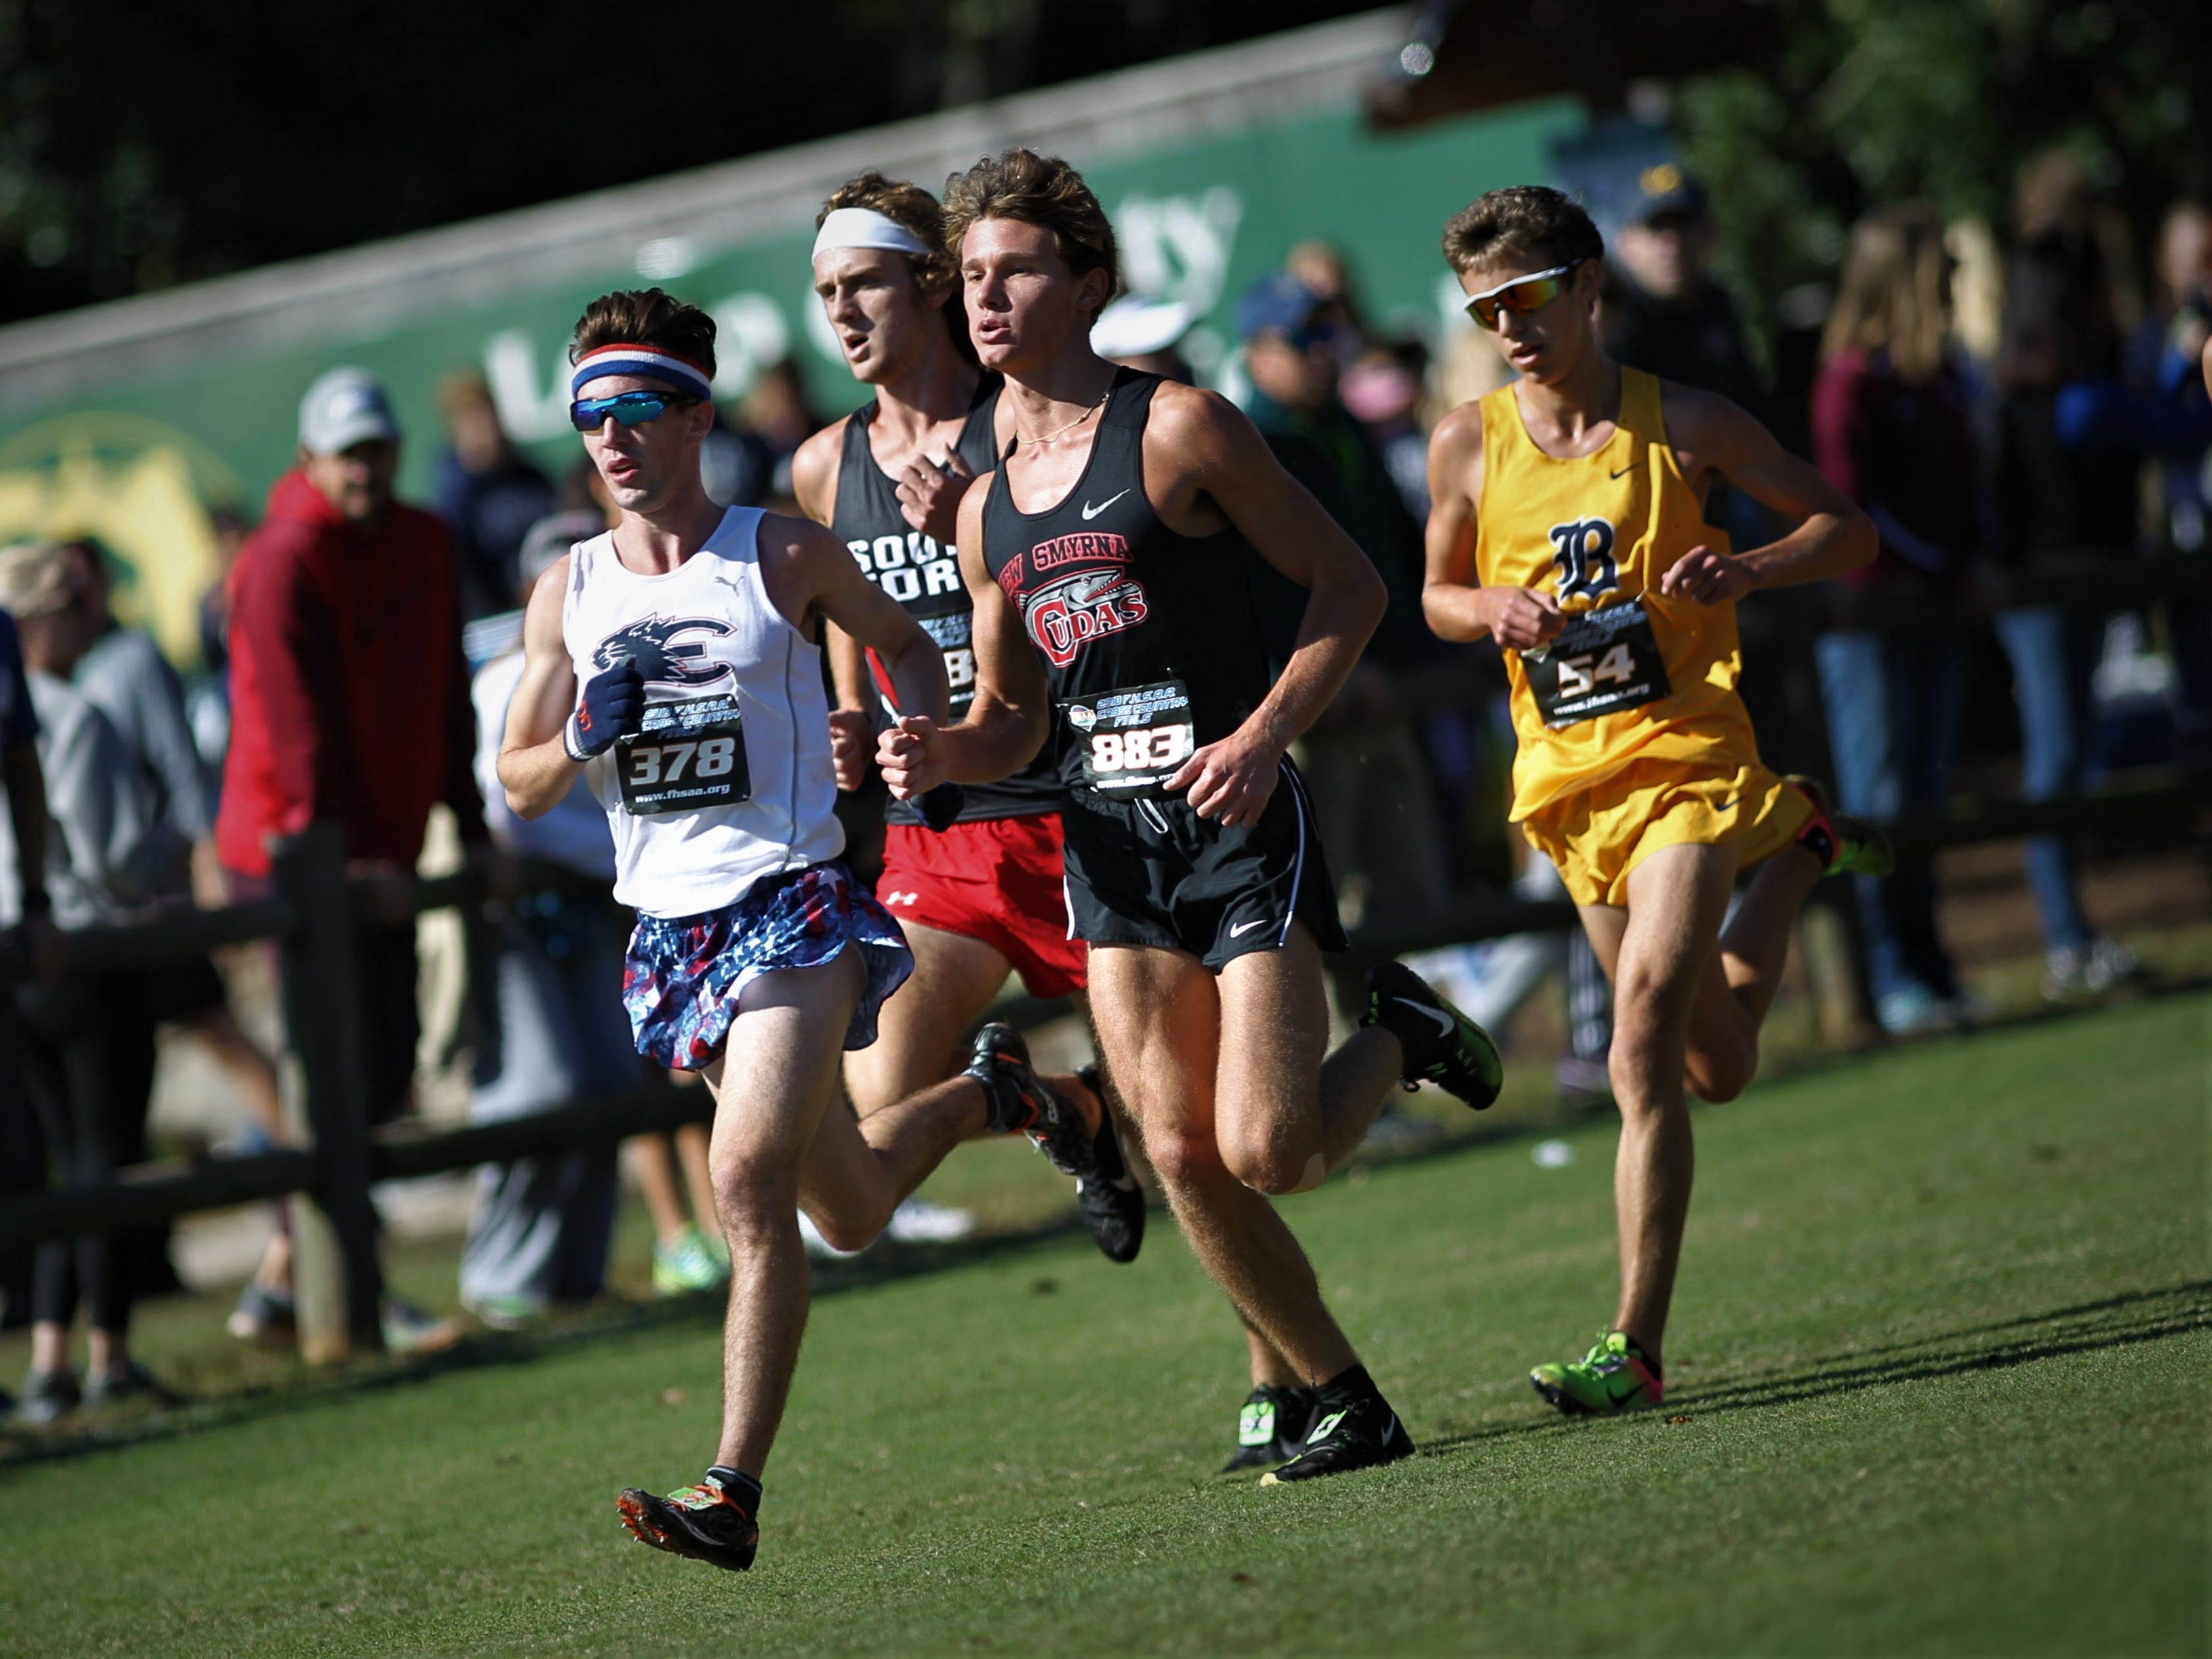 Estero senior Hugh Brittenham leads during his Class 3A state race in the FHSAA Cross Country State Championships at Apalachee Regional Park in Tallahassee, Saturday, Nov. 11, 2018.